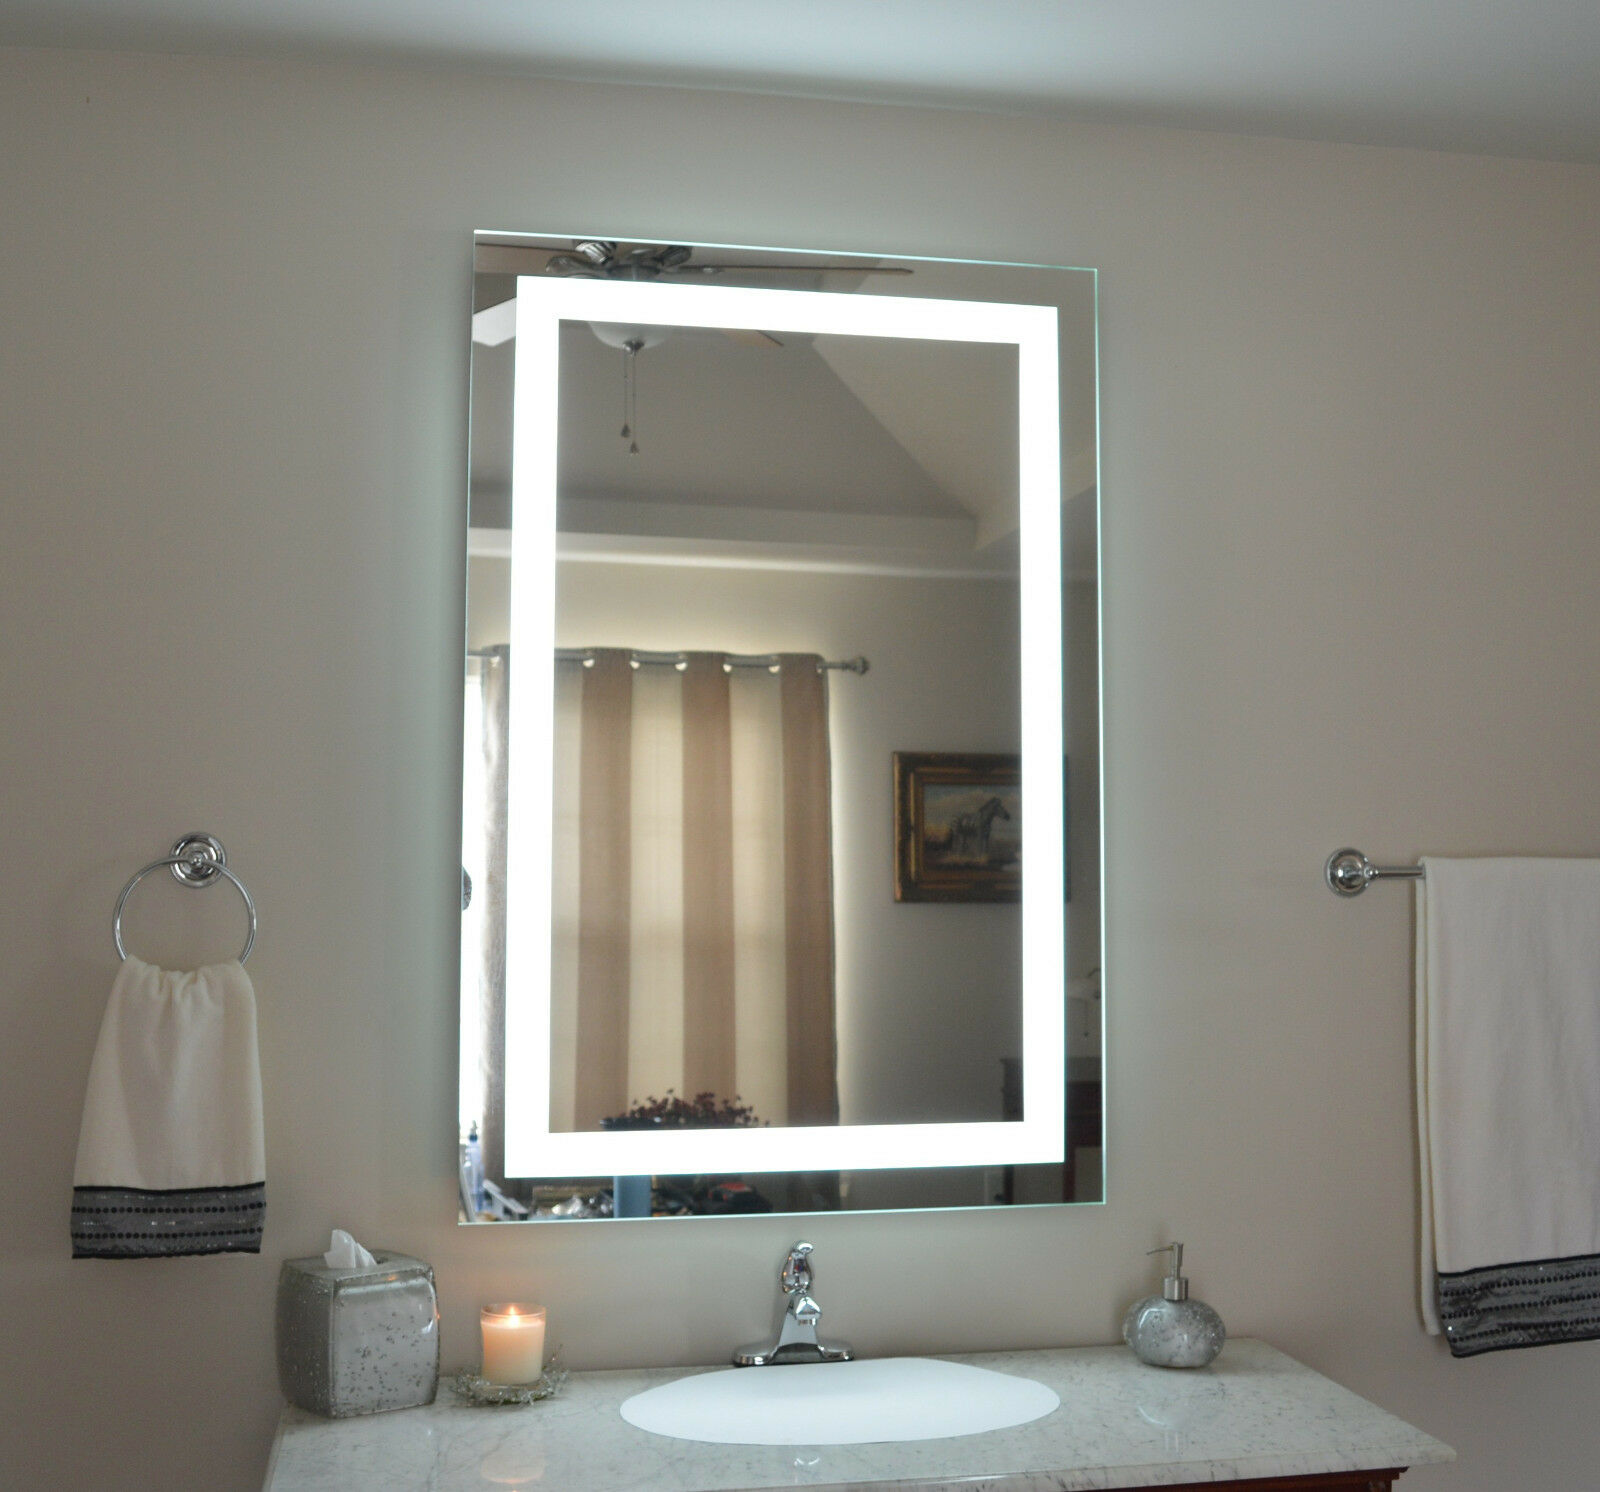 Makeup Vanities With Lighted Mirrors Mam83248 32 Quot W X 48 Quot T Lighted Vanity Mirror Wall